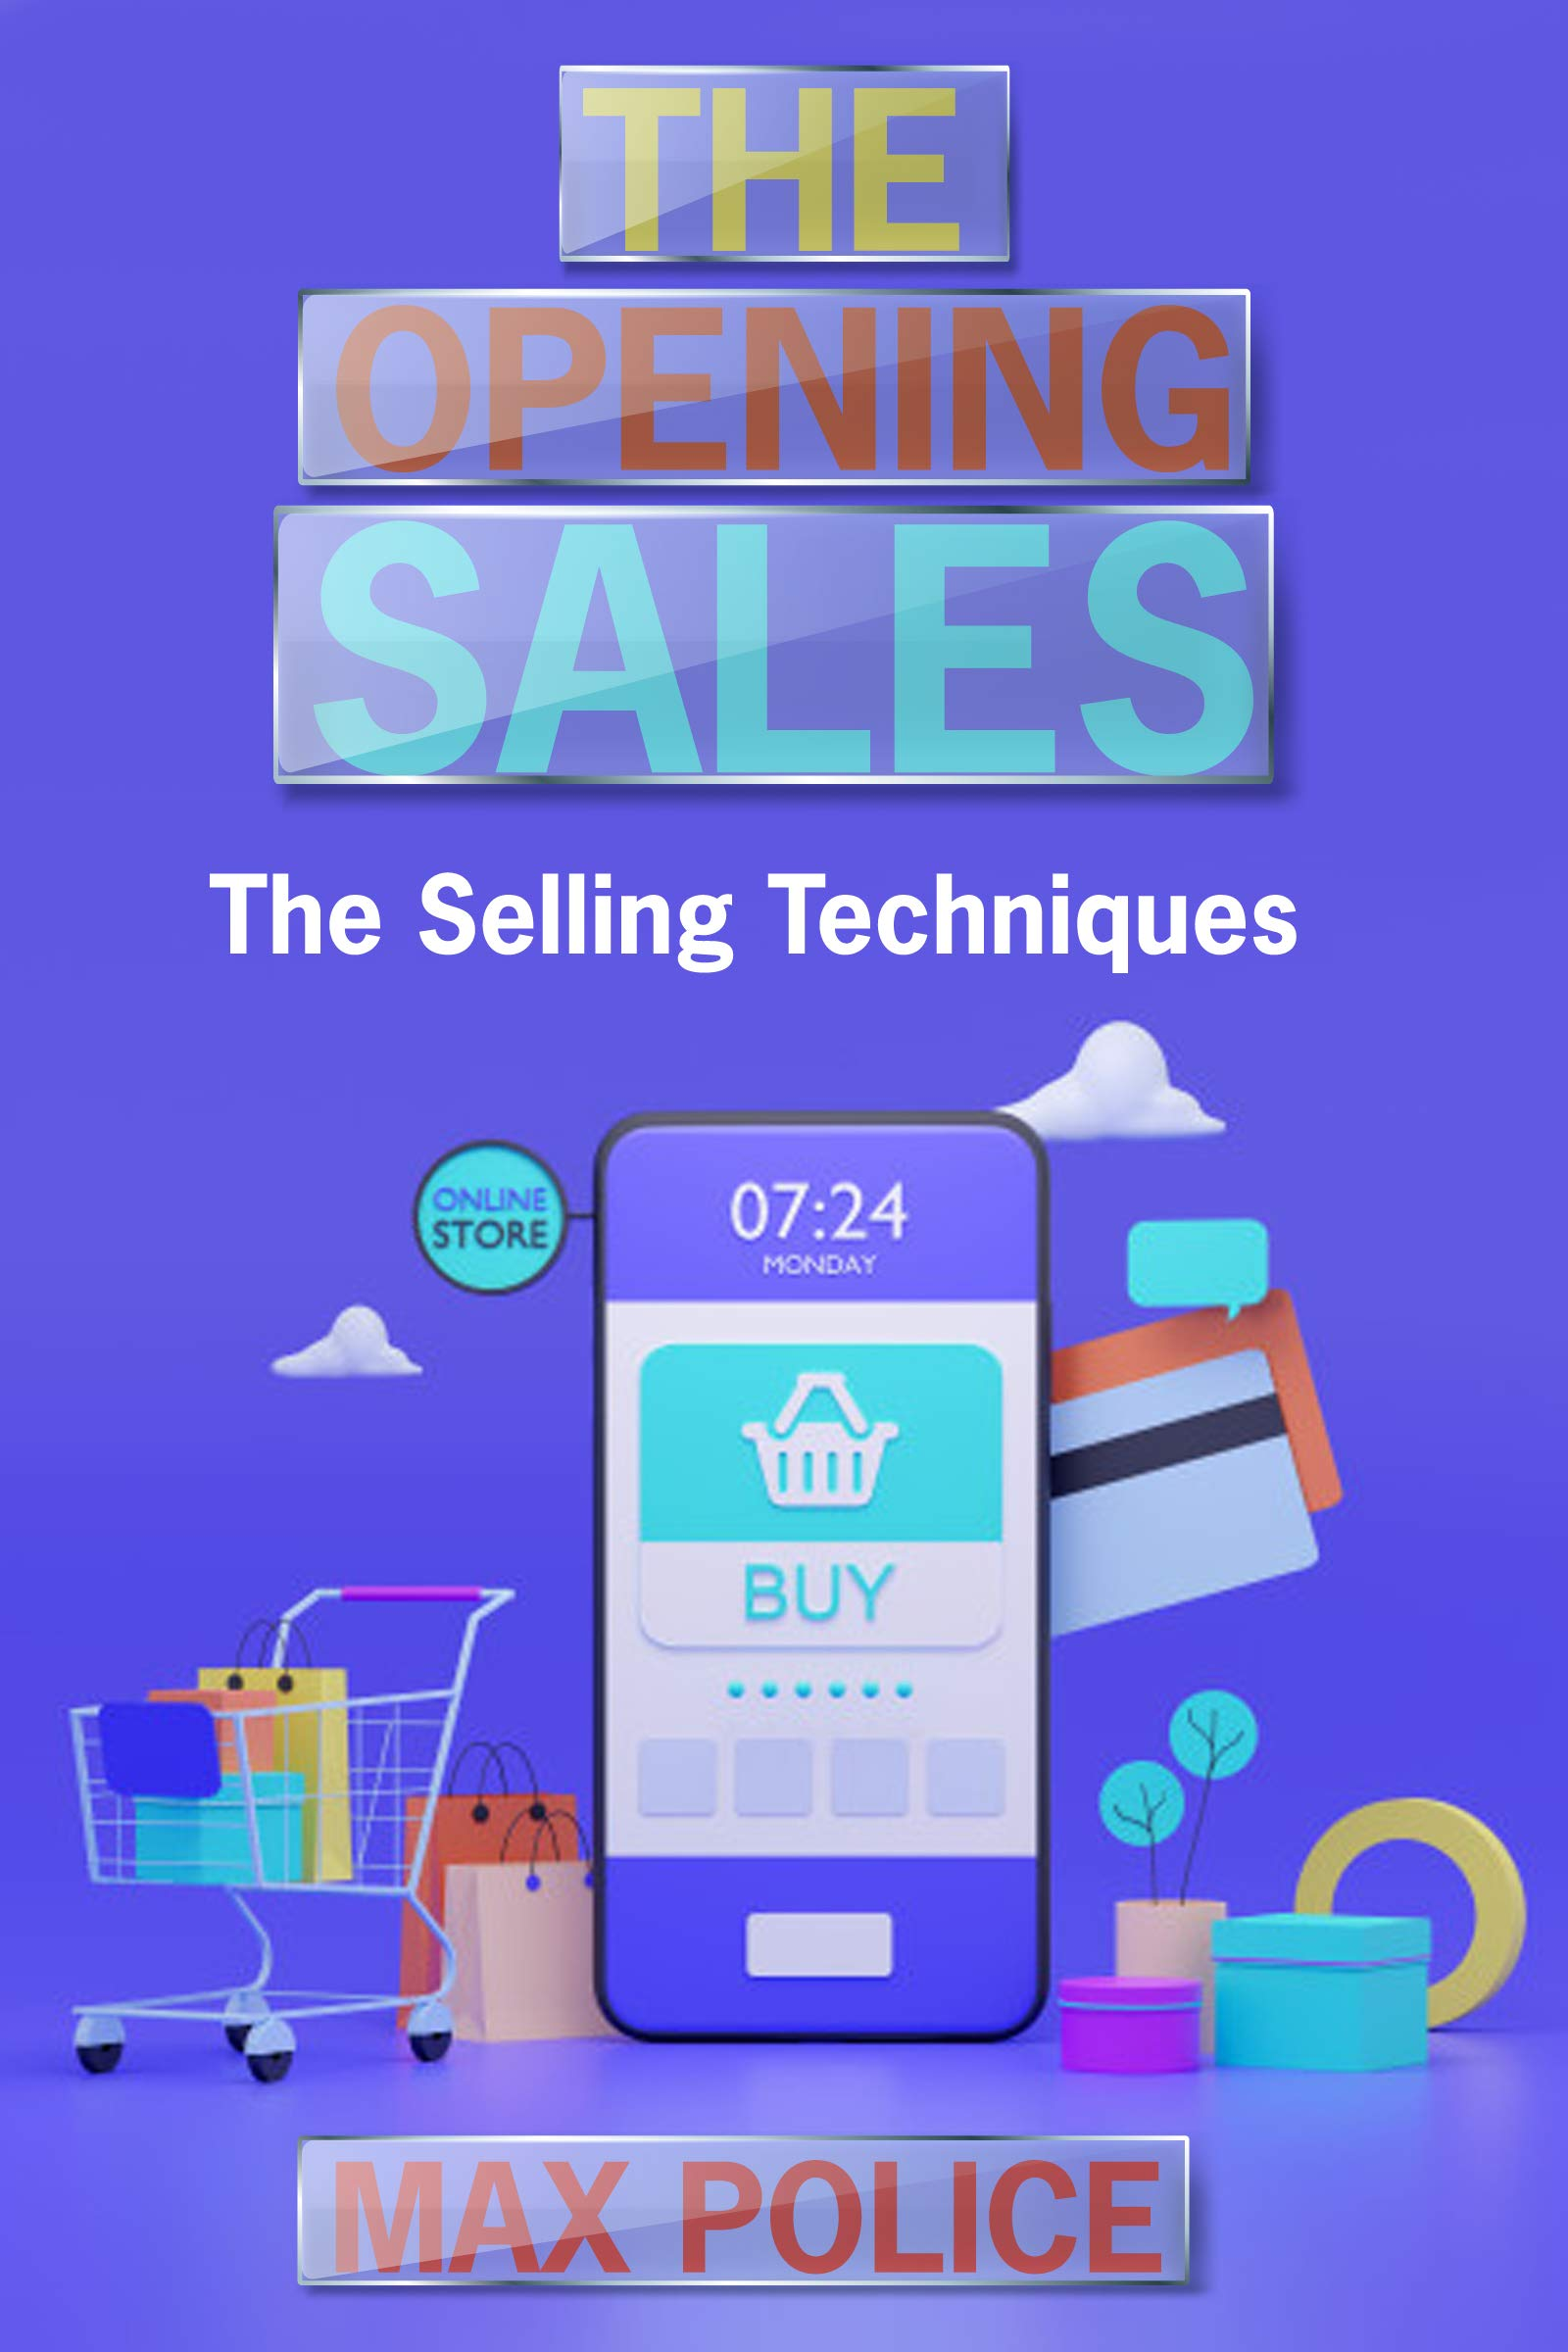 THE OPENING SALES: The Selling Techniques